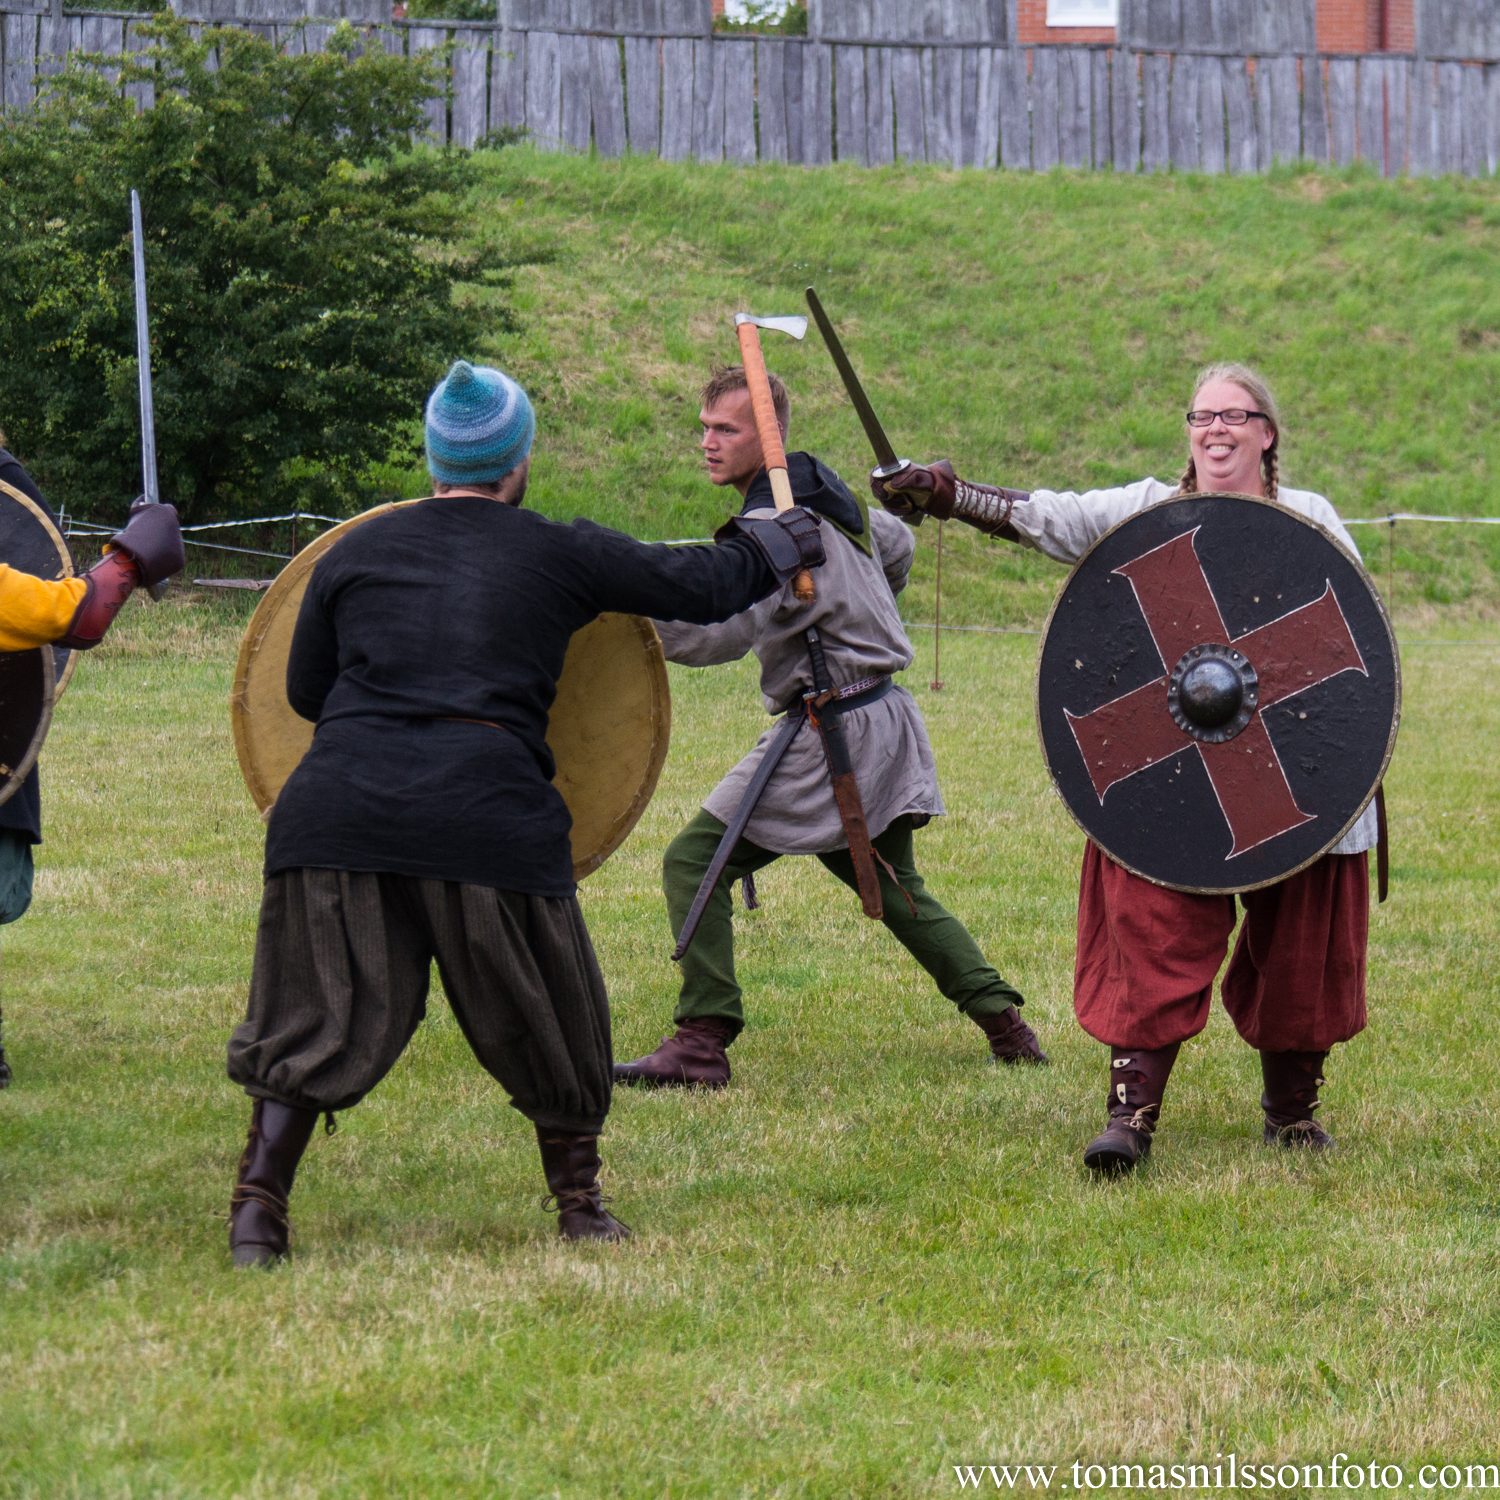 Day 189 - July 8: Being a Viking is serious business!